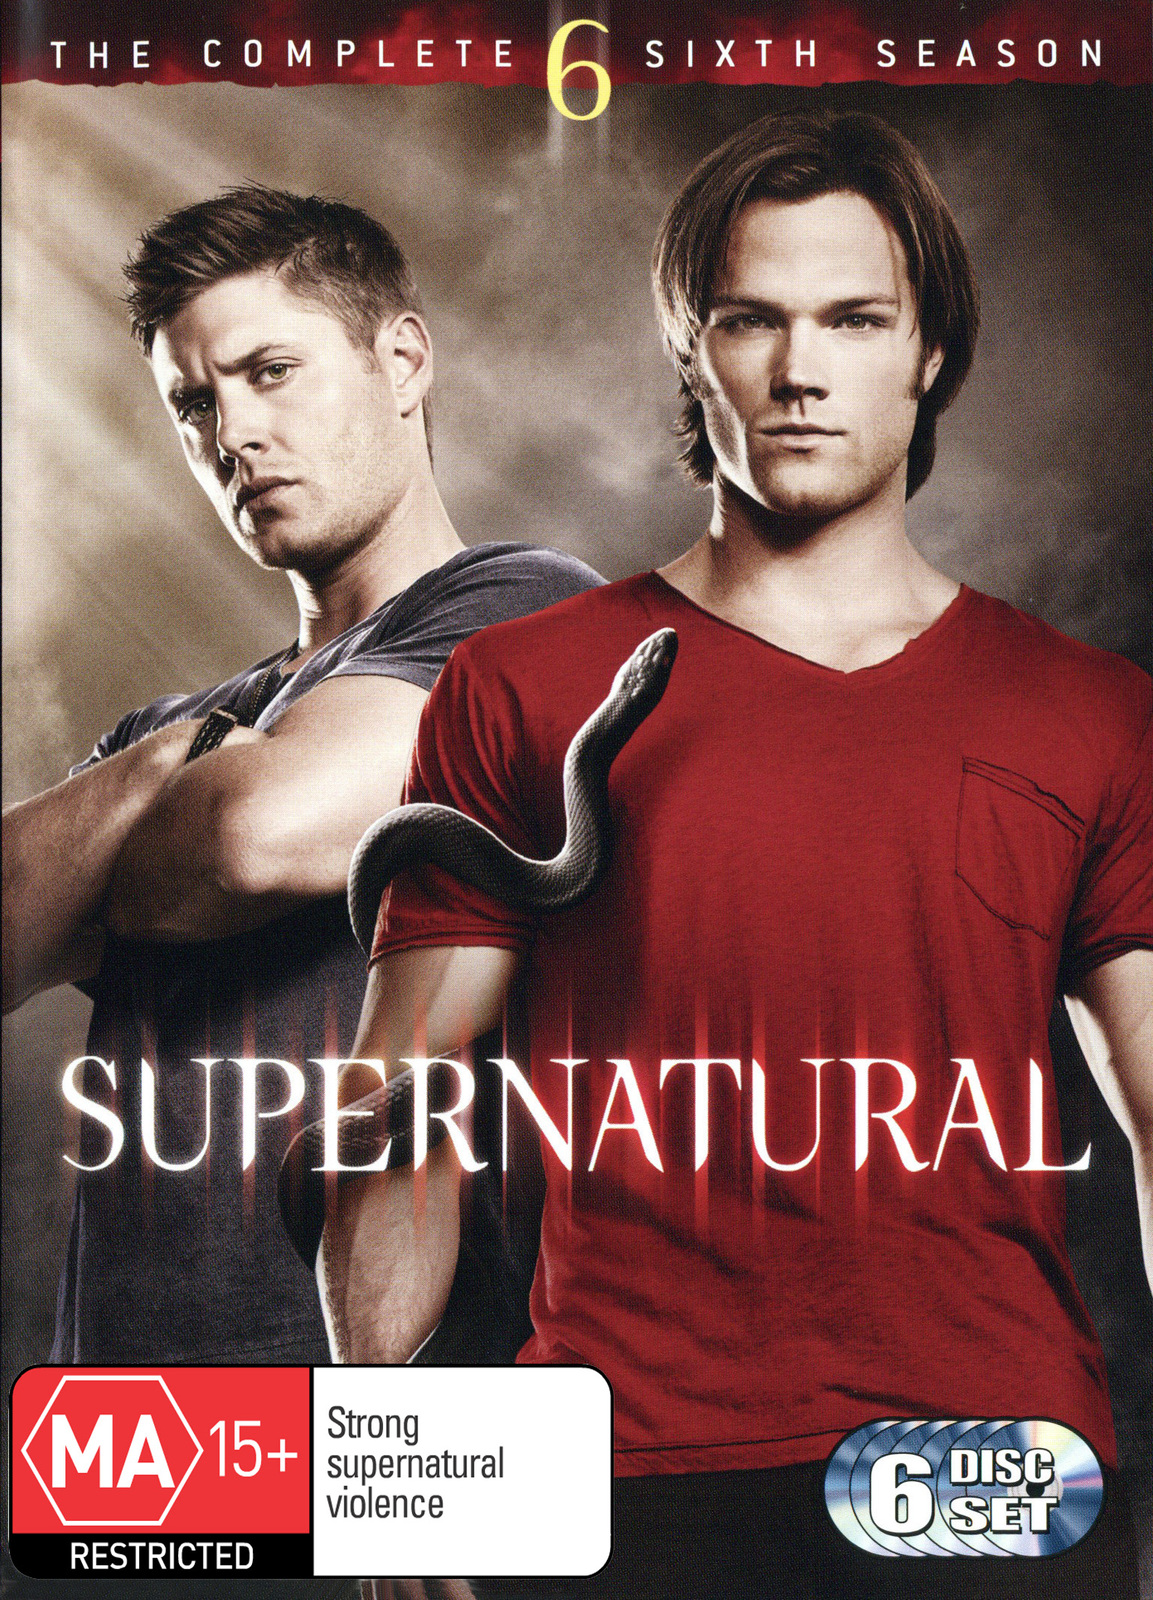 Supernatural - The Complete 6th Season image